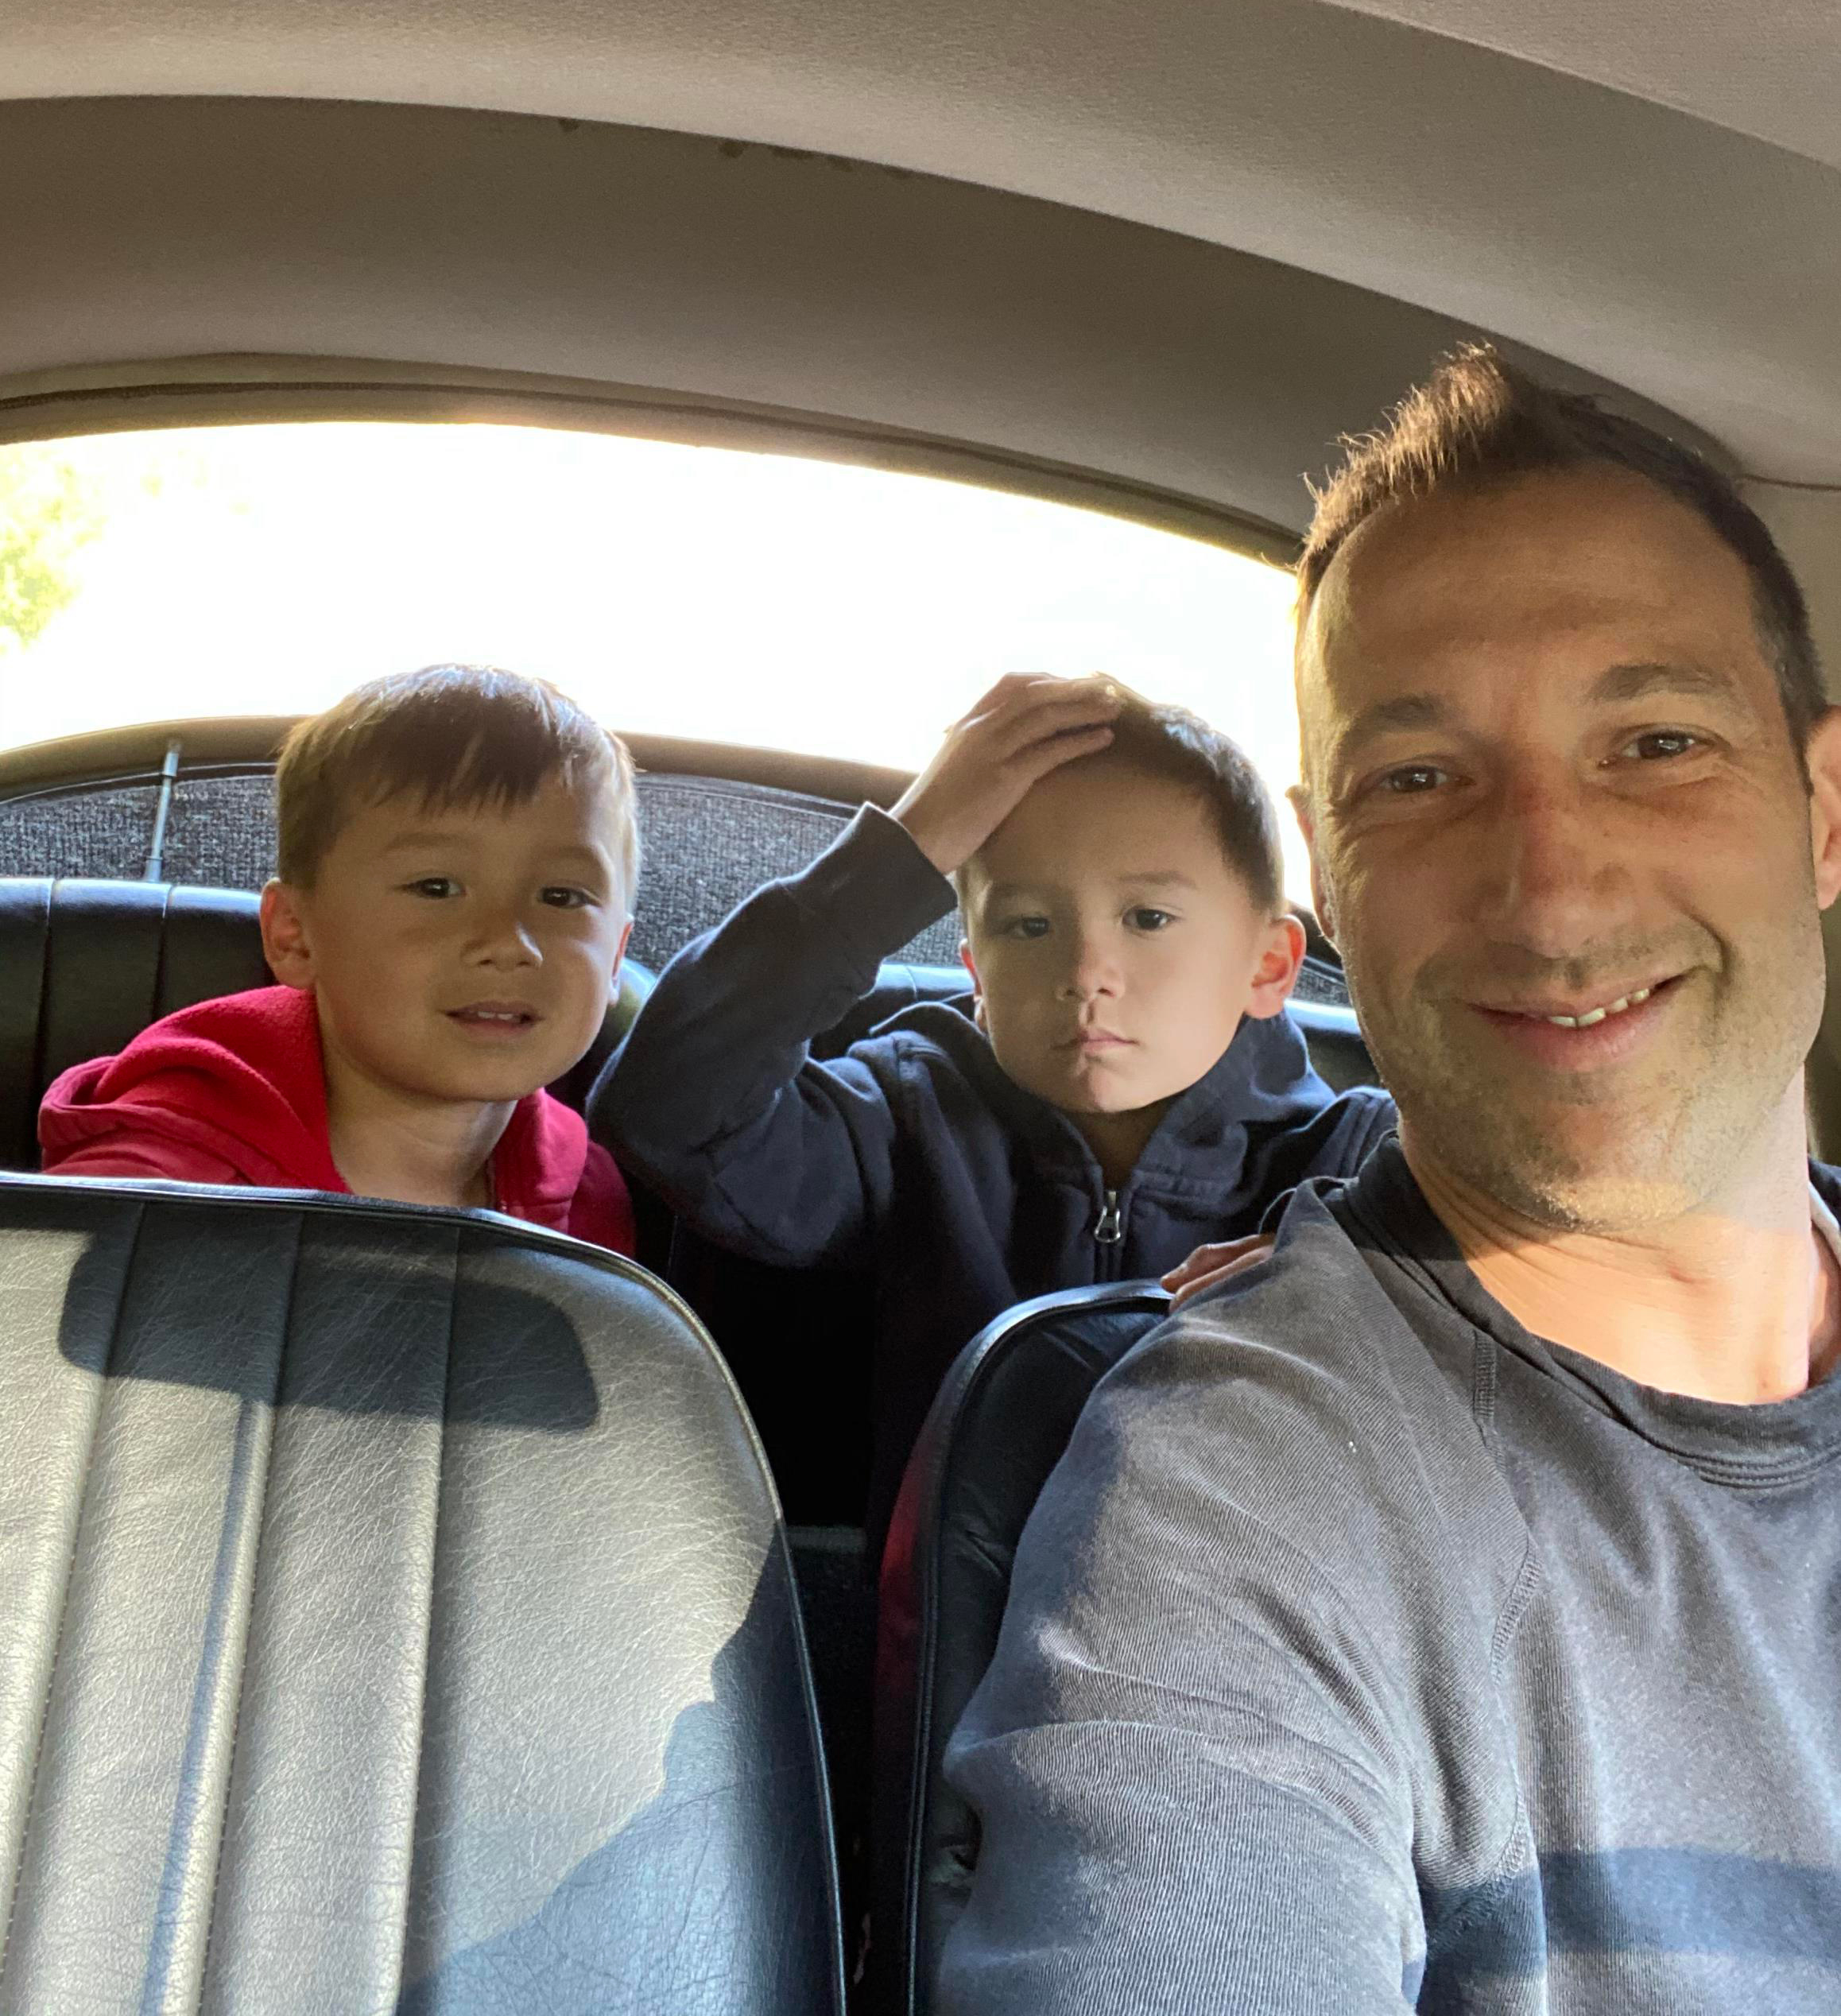 Dr. Evan Goldstein and his two kids